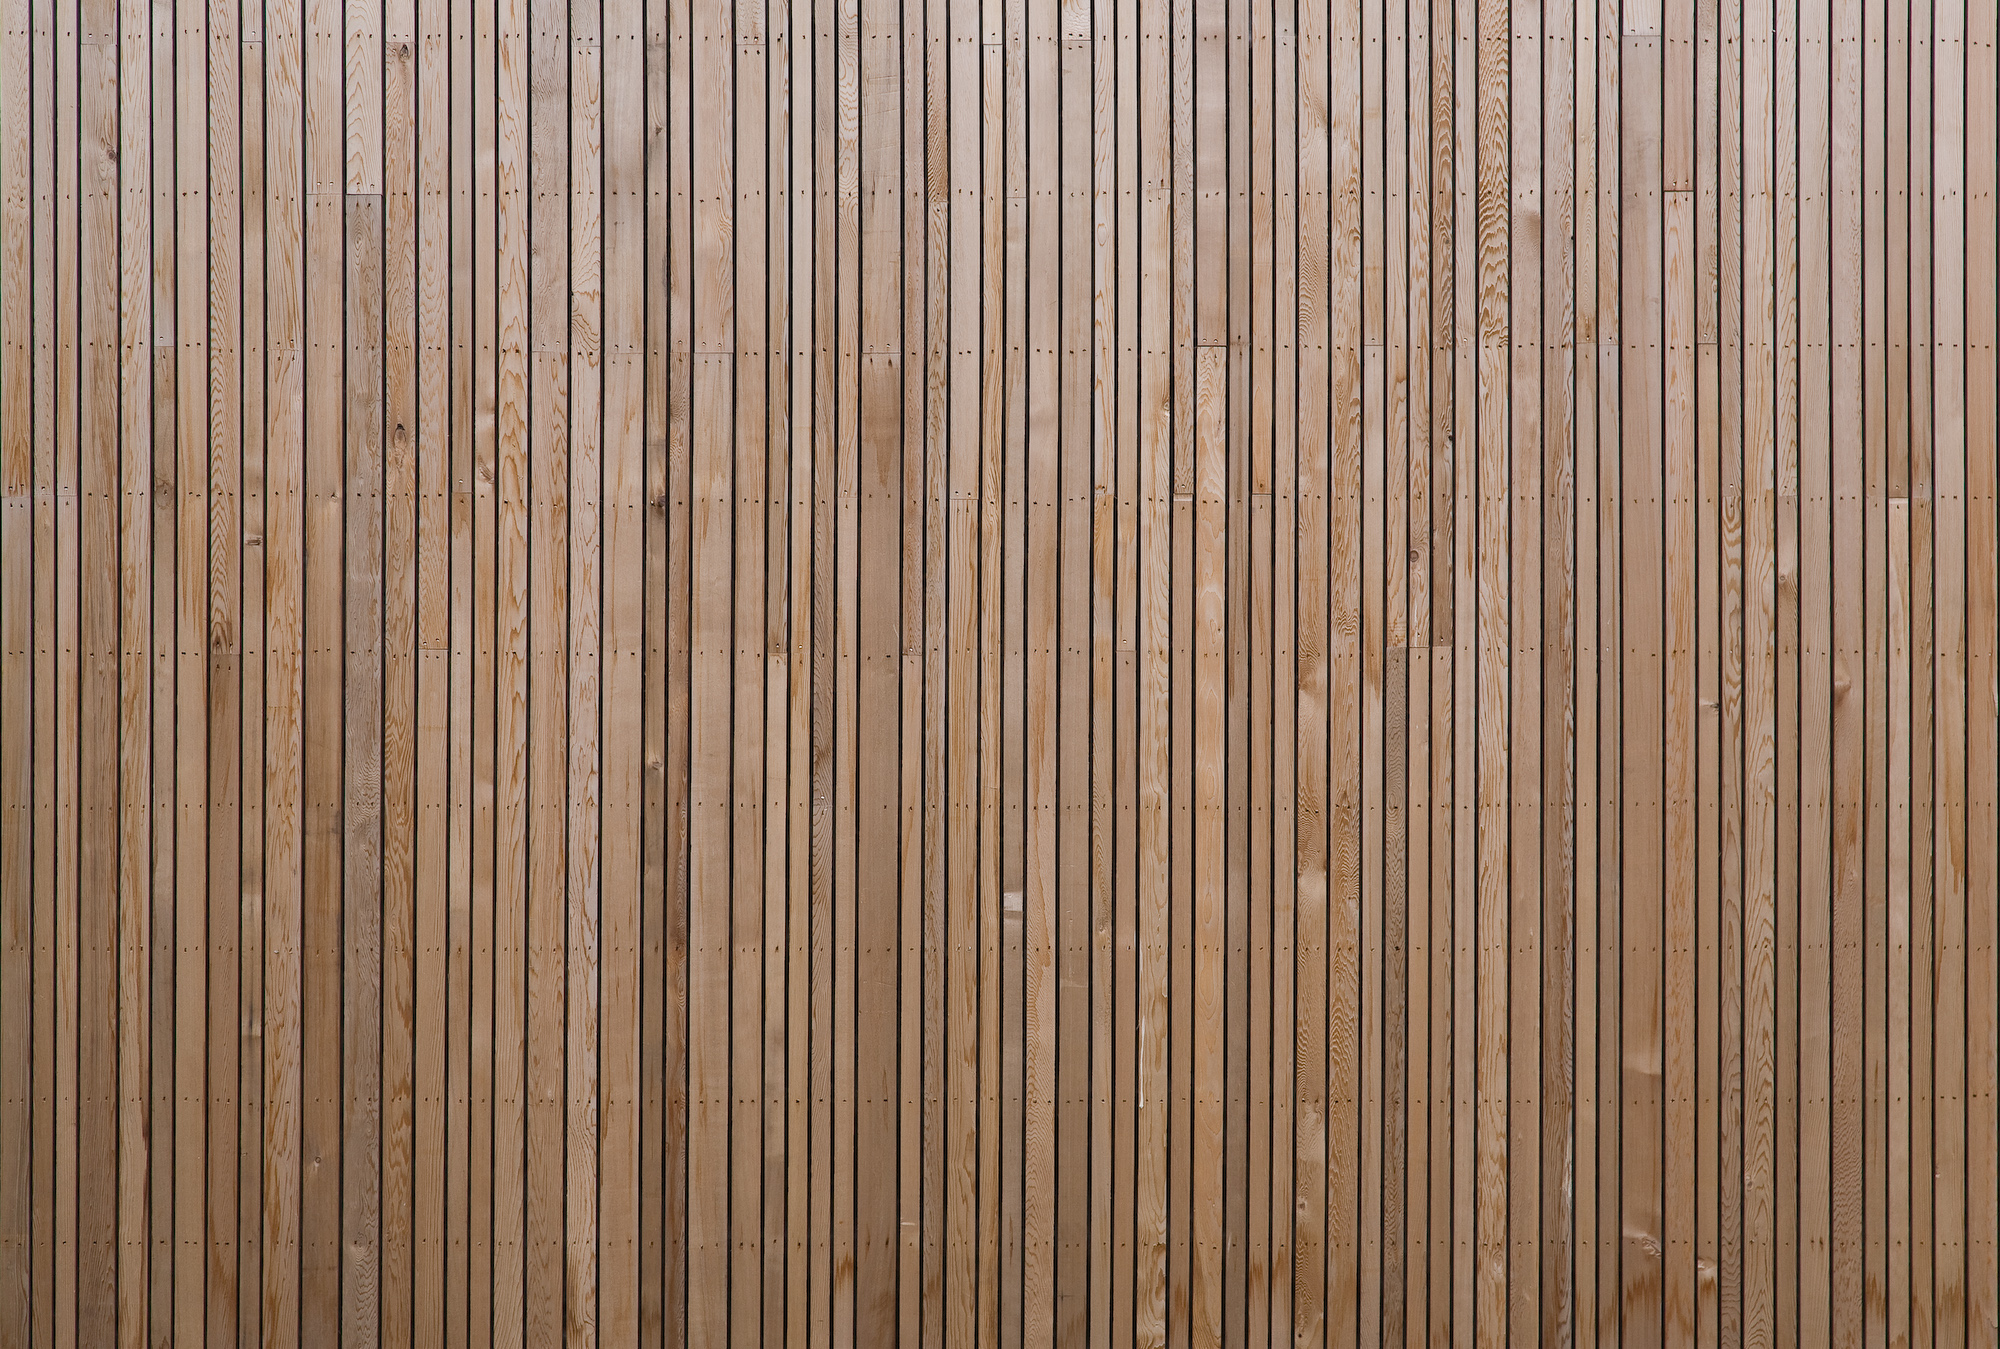 Exterior Wood Cladding Texture Exterior Textured Paint